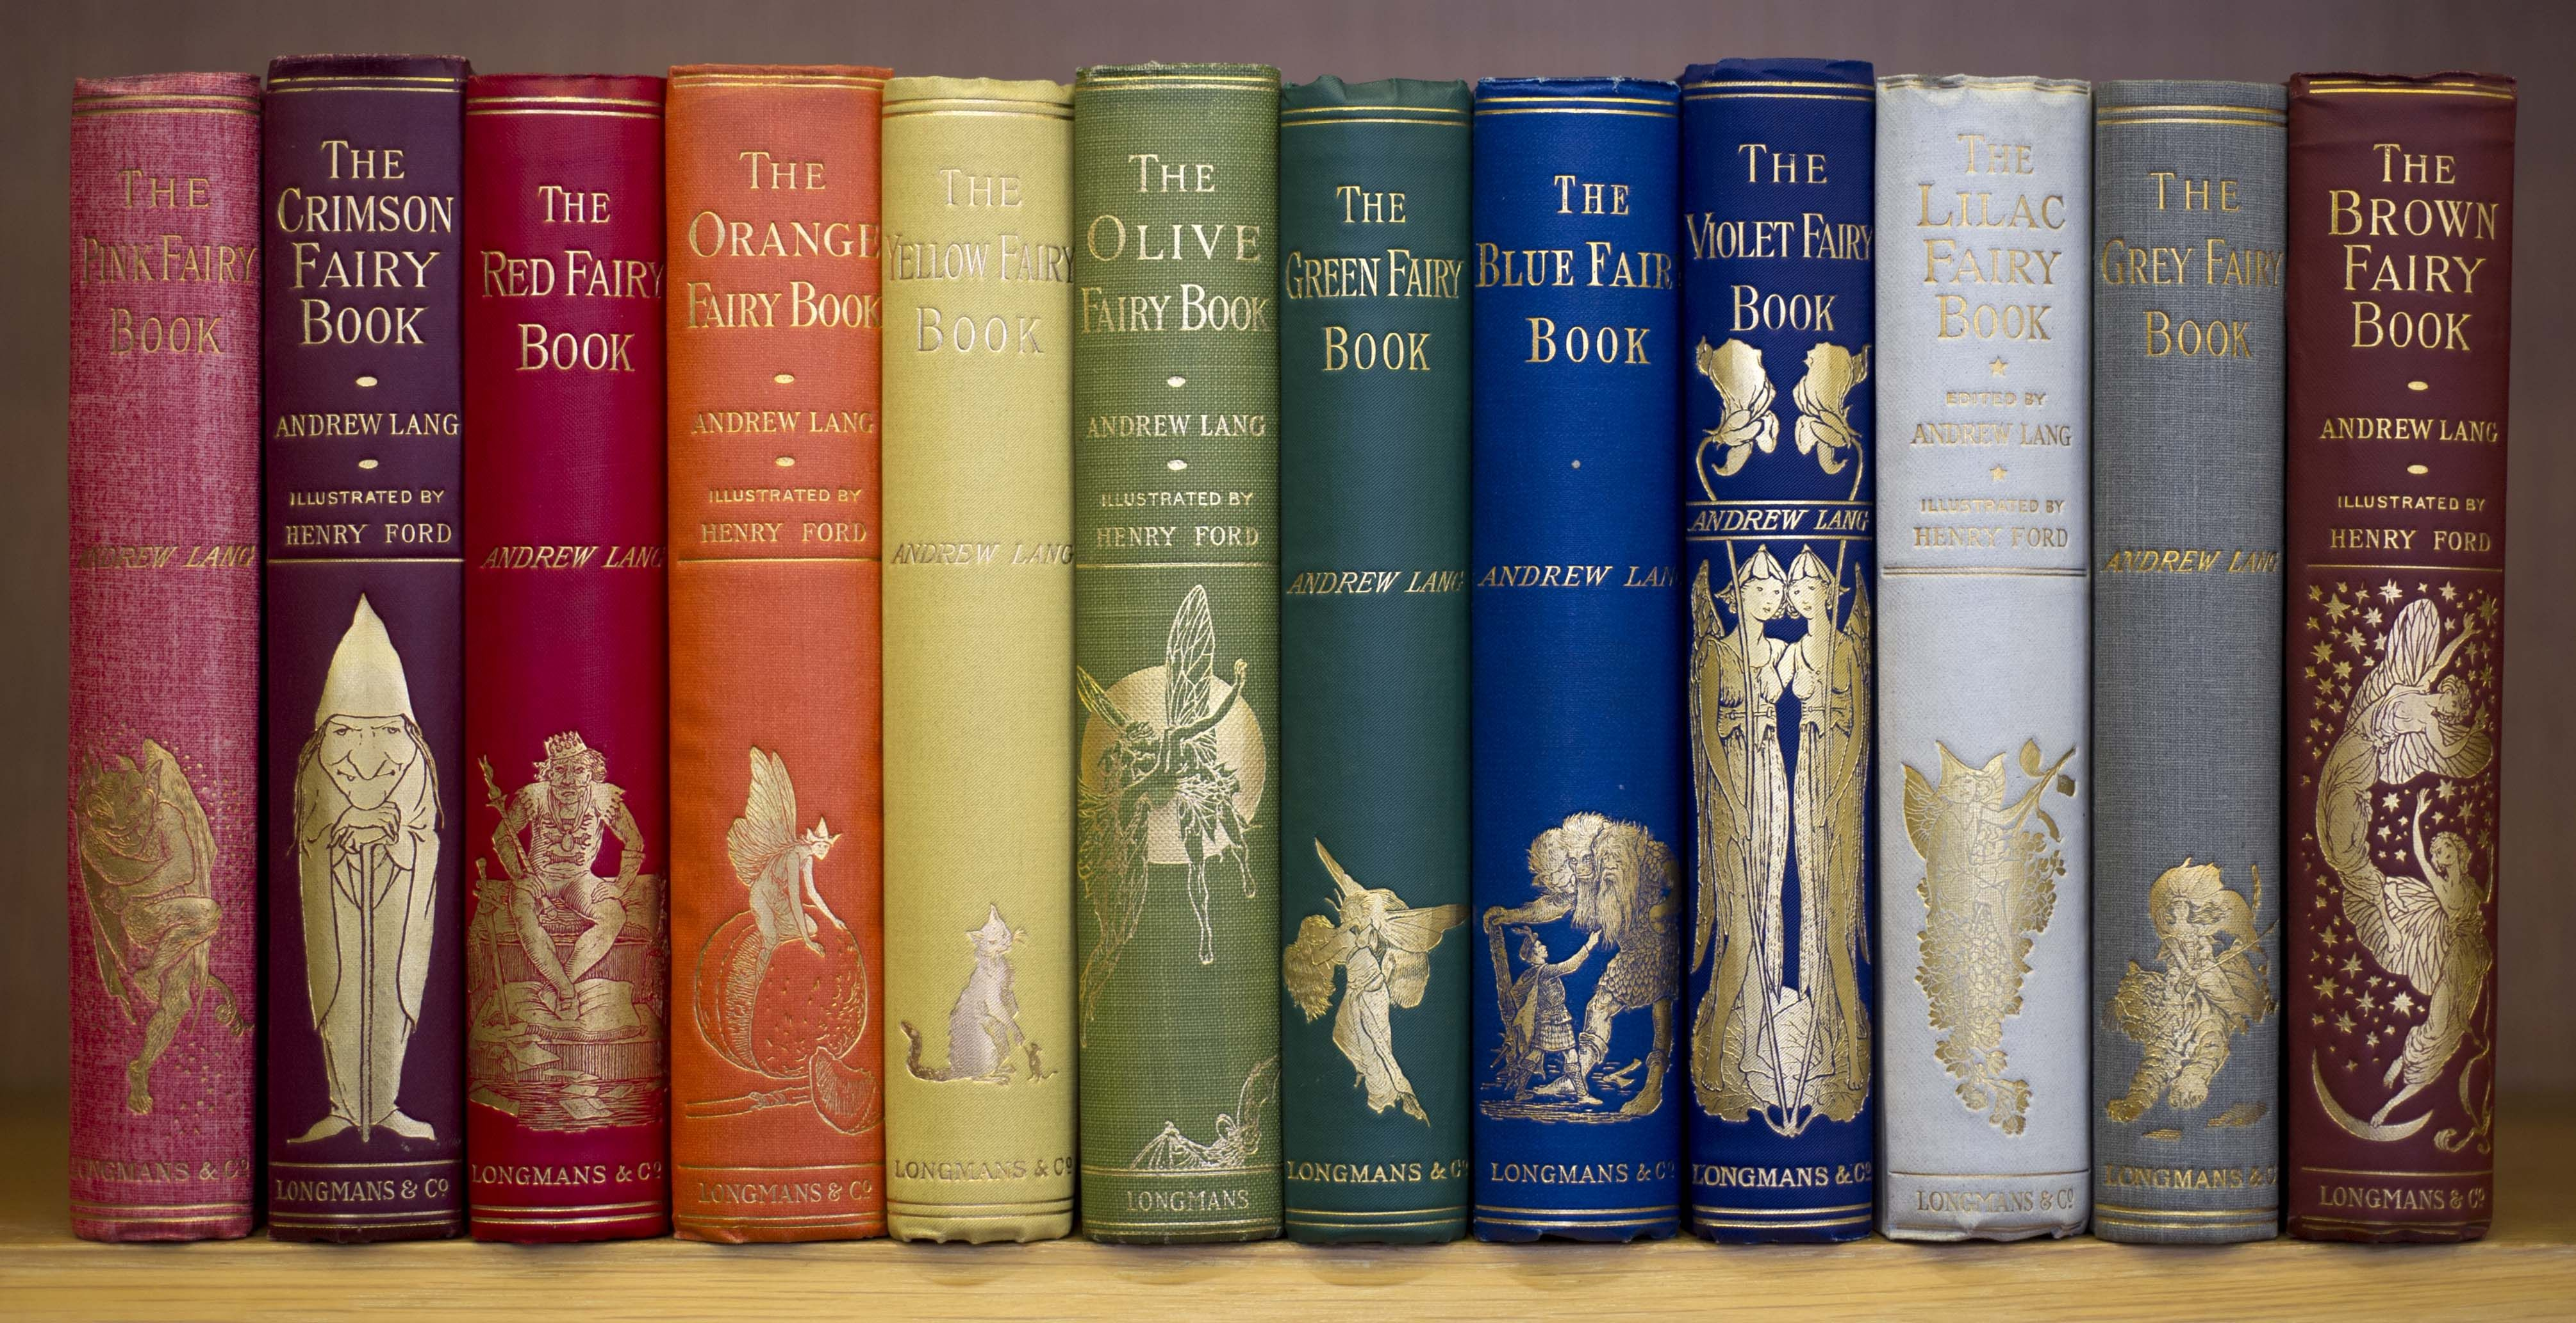 Andrew langs rainbow fairy book collection cloth bound